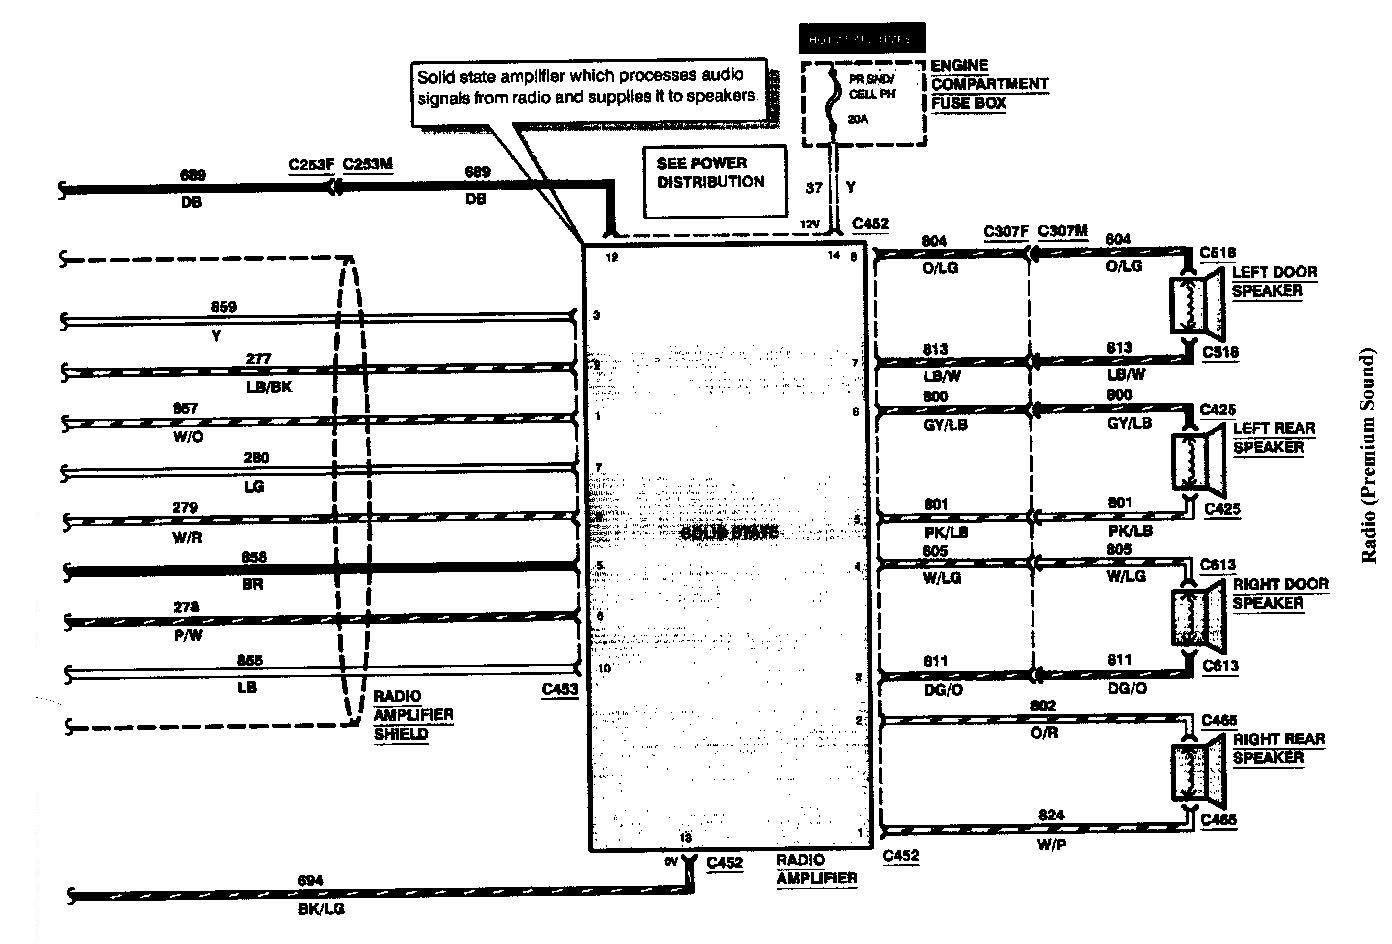 Wiring Diagram 2001 Lincoln Ls Rear Just Another Blog 1998 Schema Online Rh 7 2 13 Travelmate Nz De